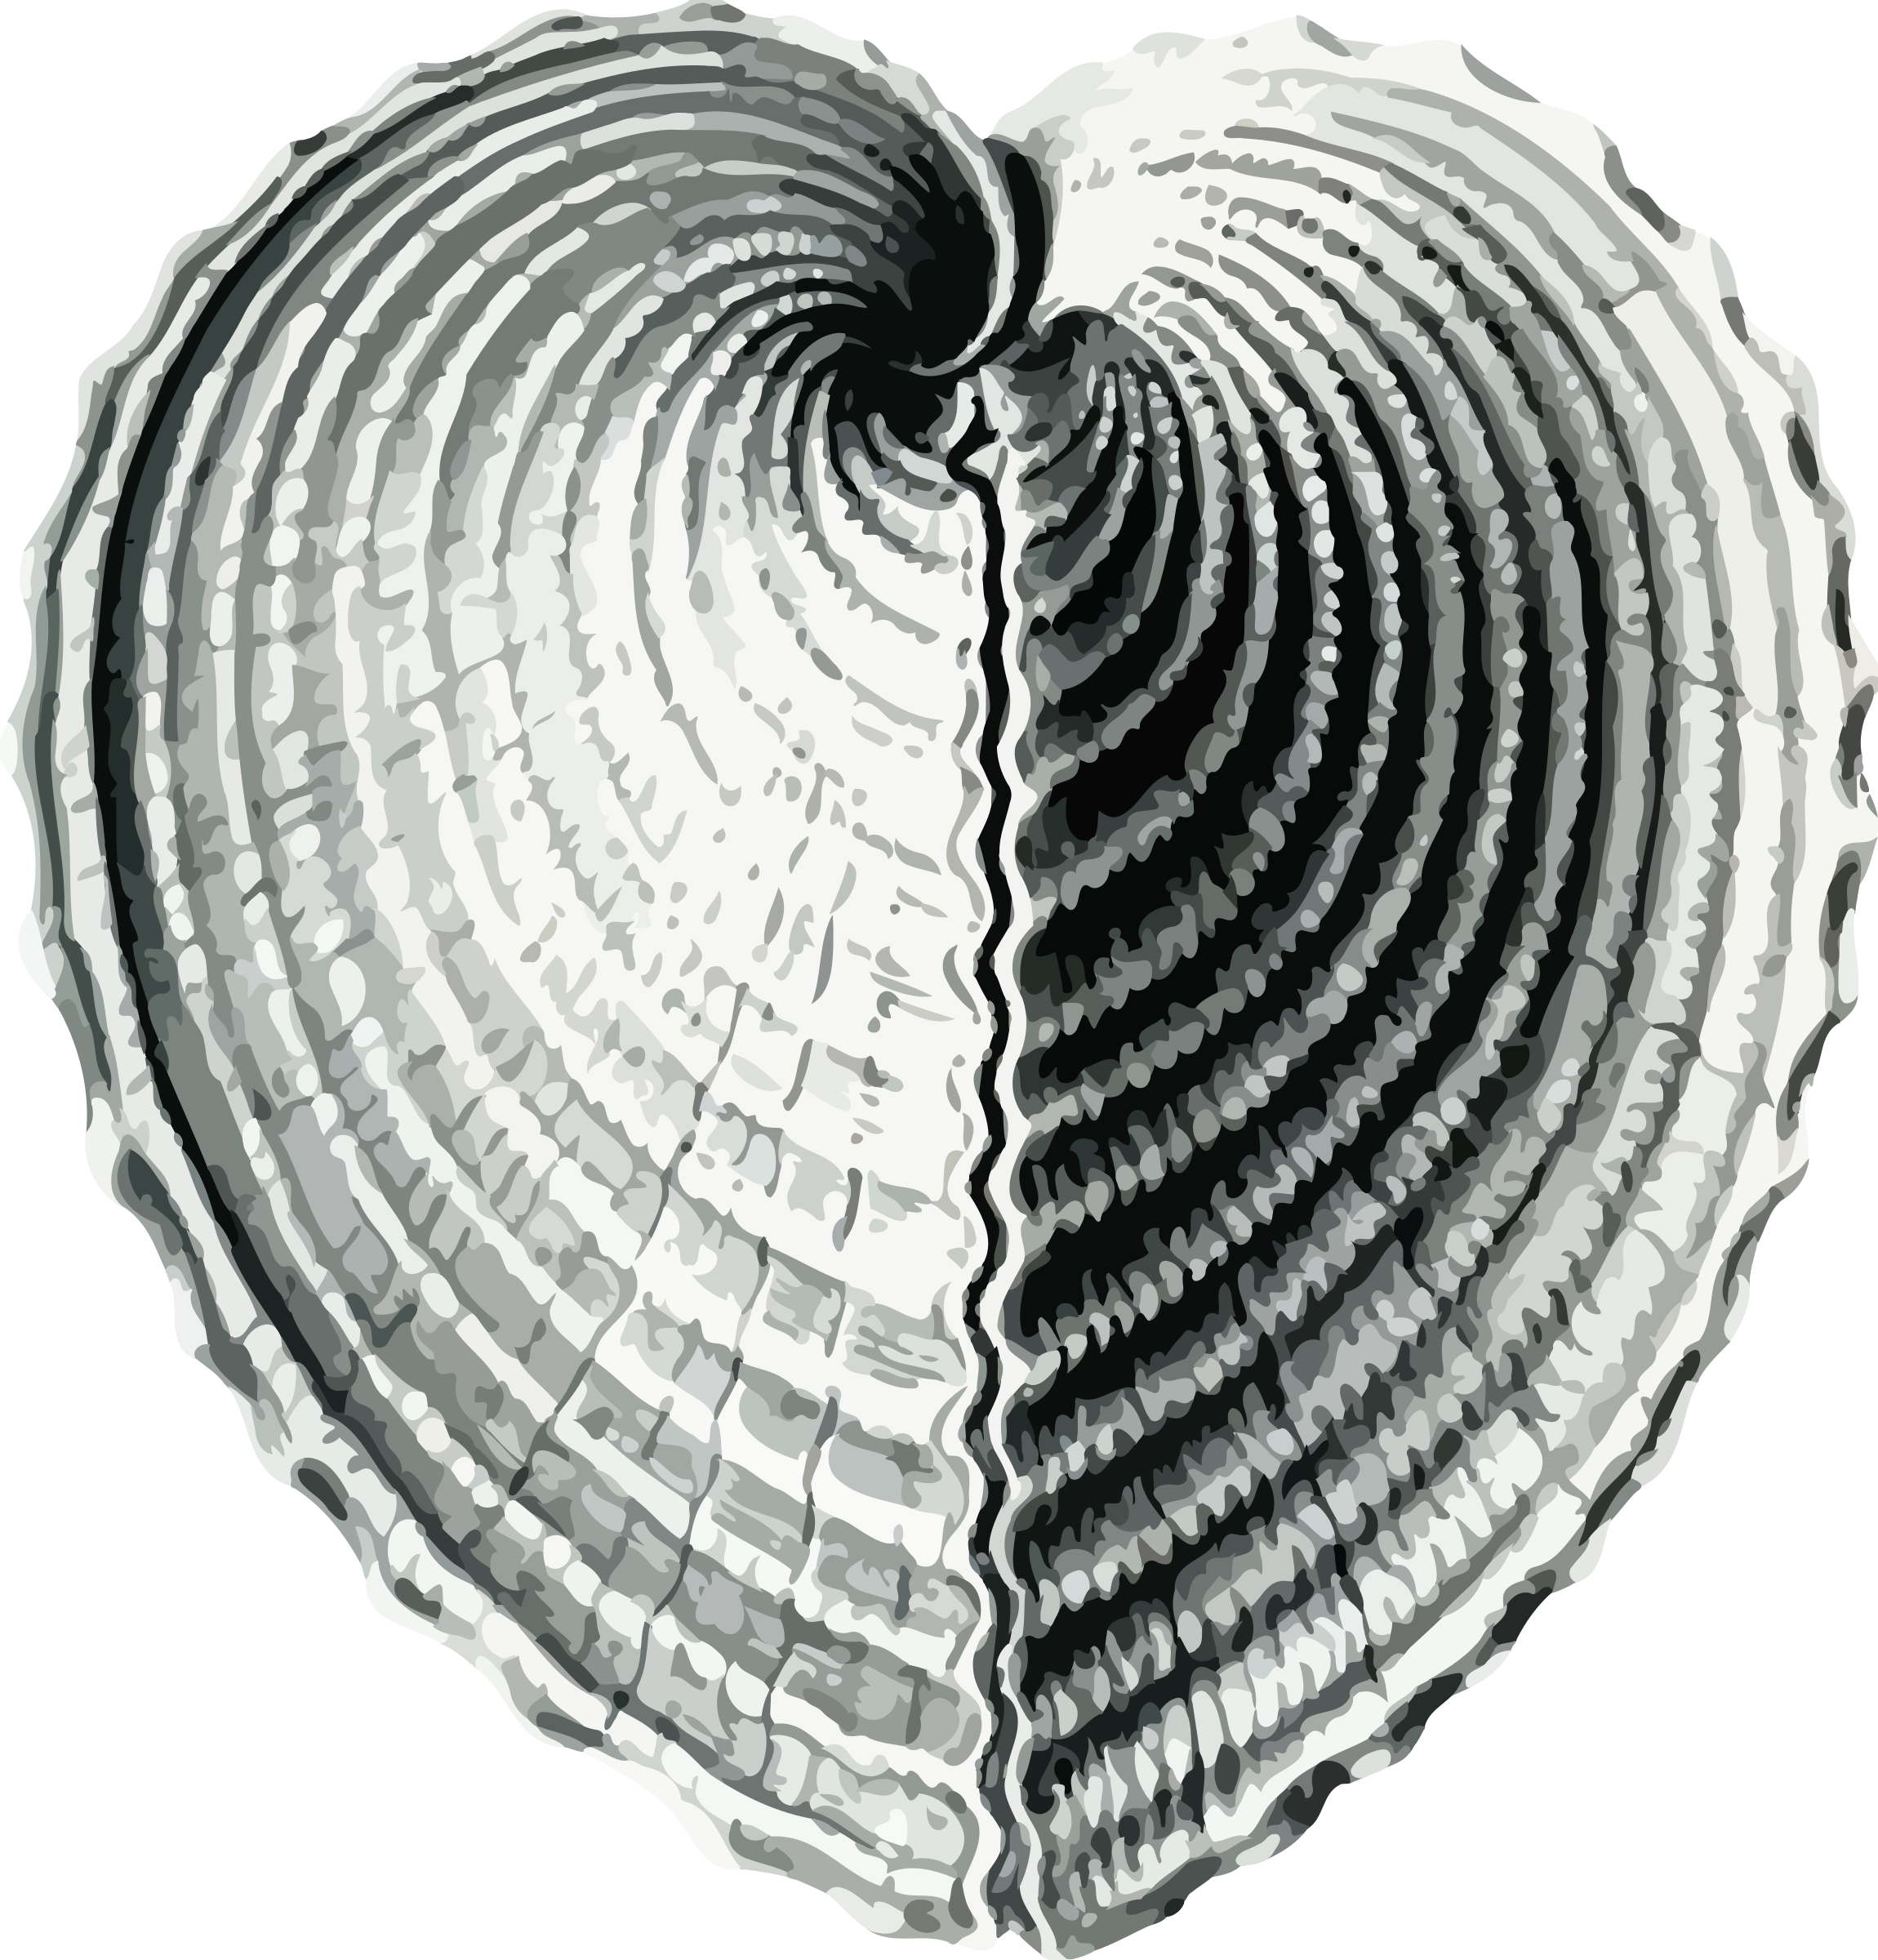 Shell heart clipart clip art black and white download Clipart - Bivalve 1 - heart cockle clip art black and white download